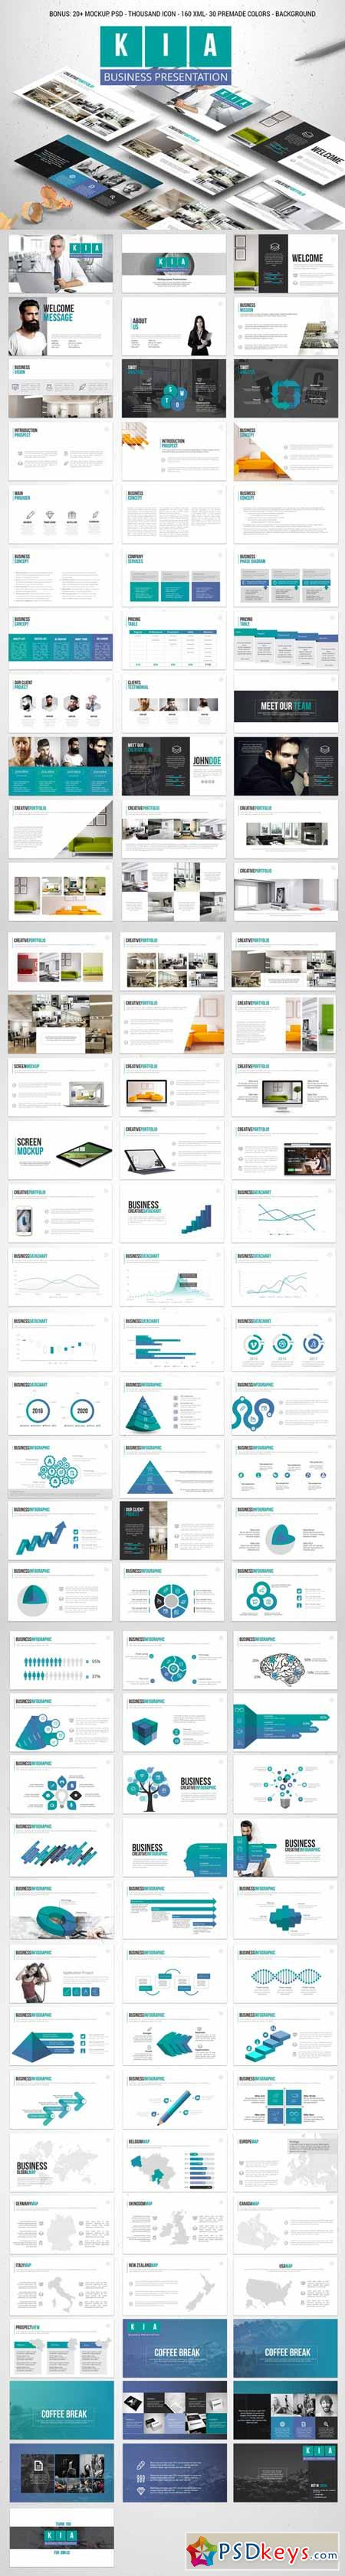 KIA Powerpoint Template 585914